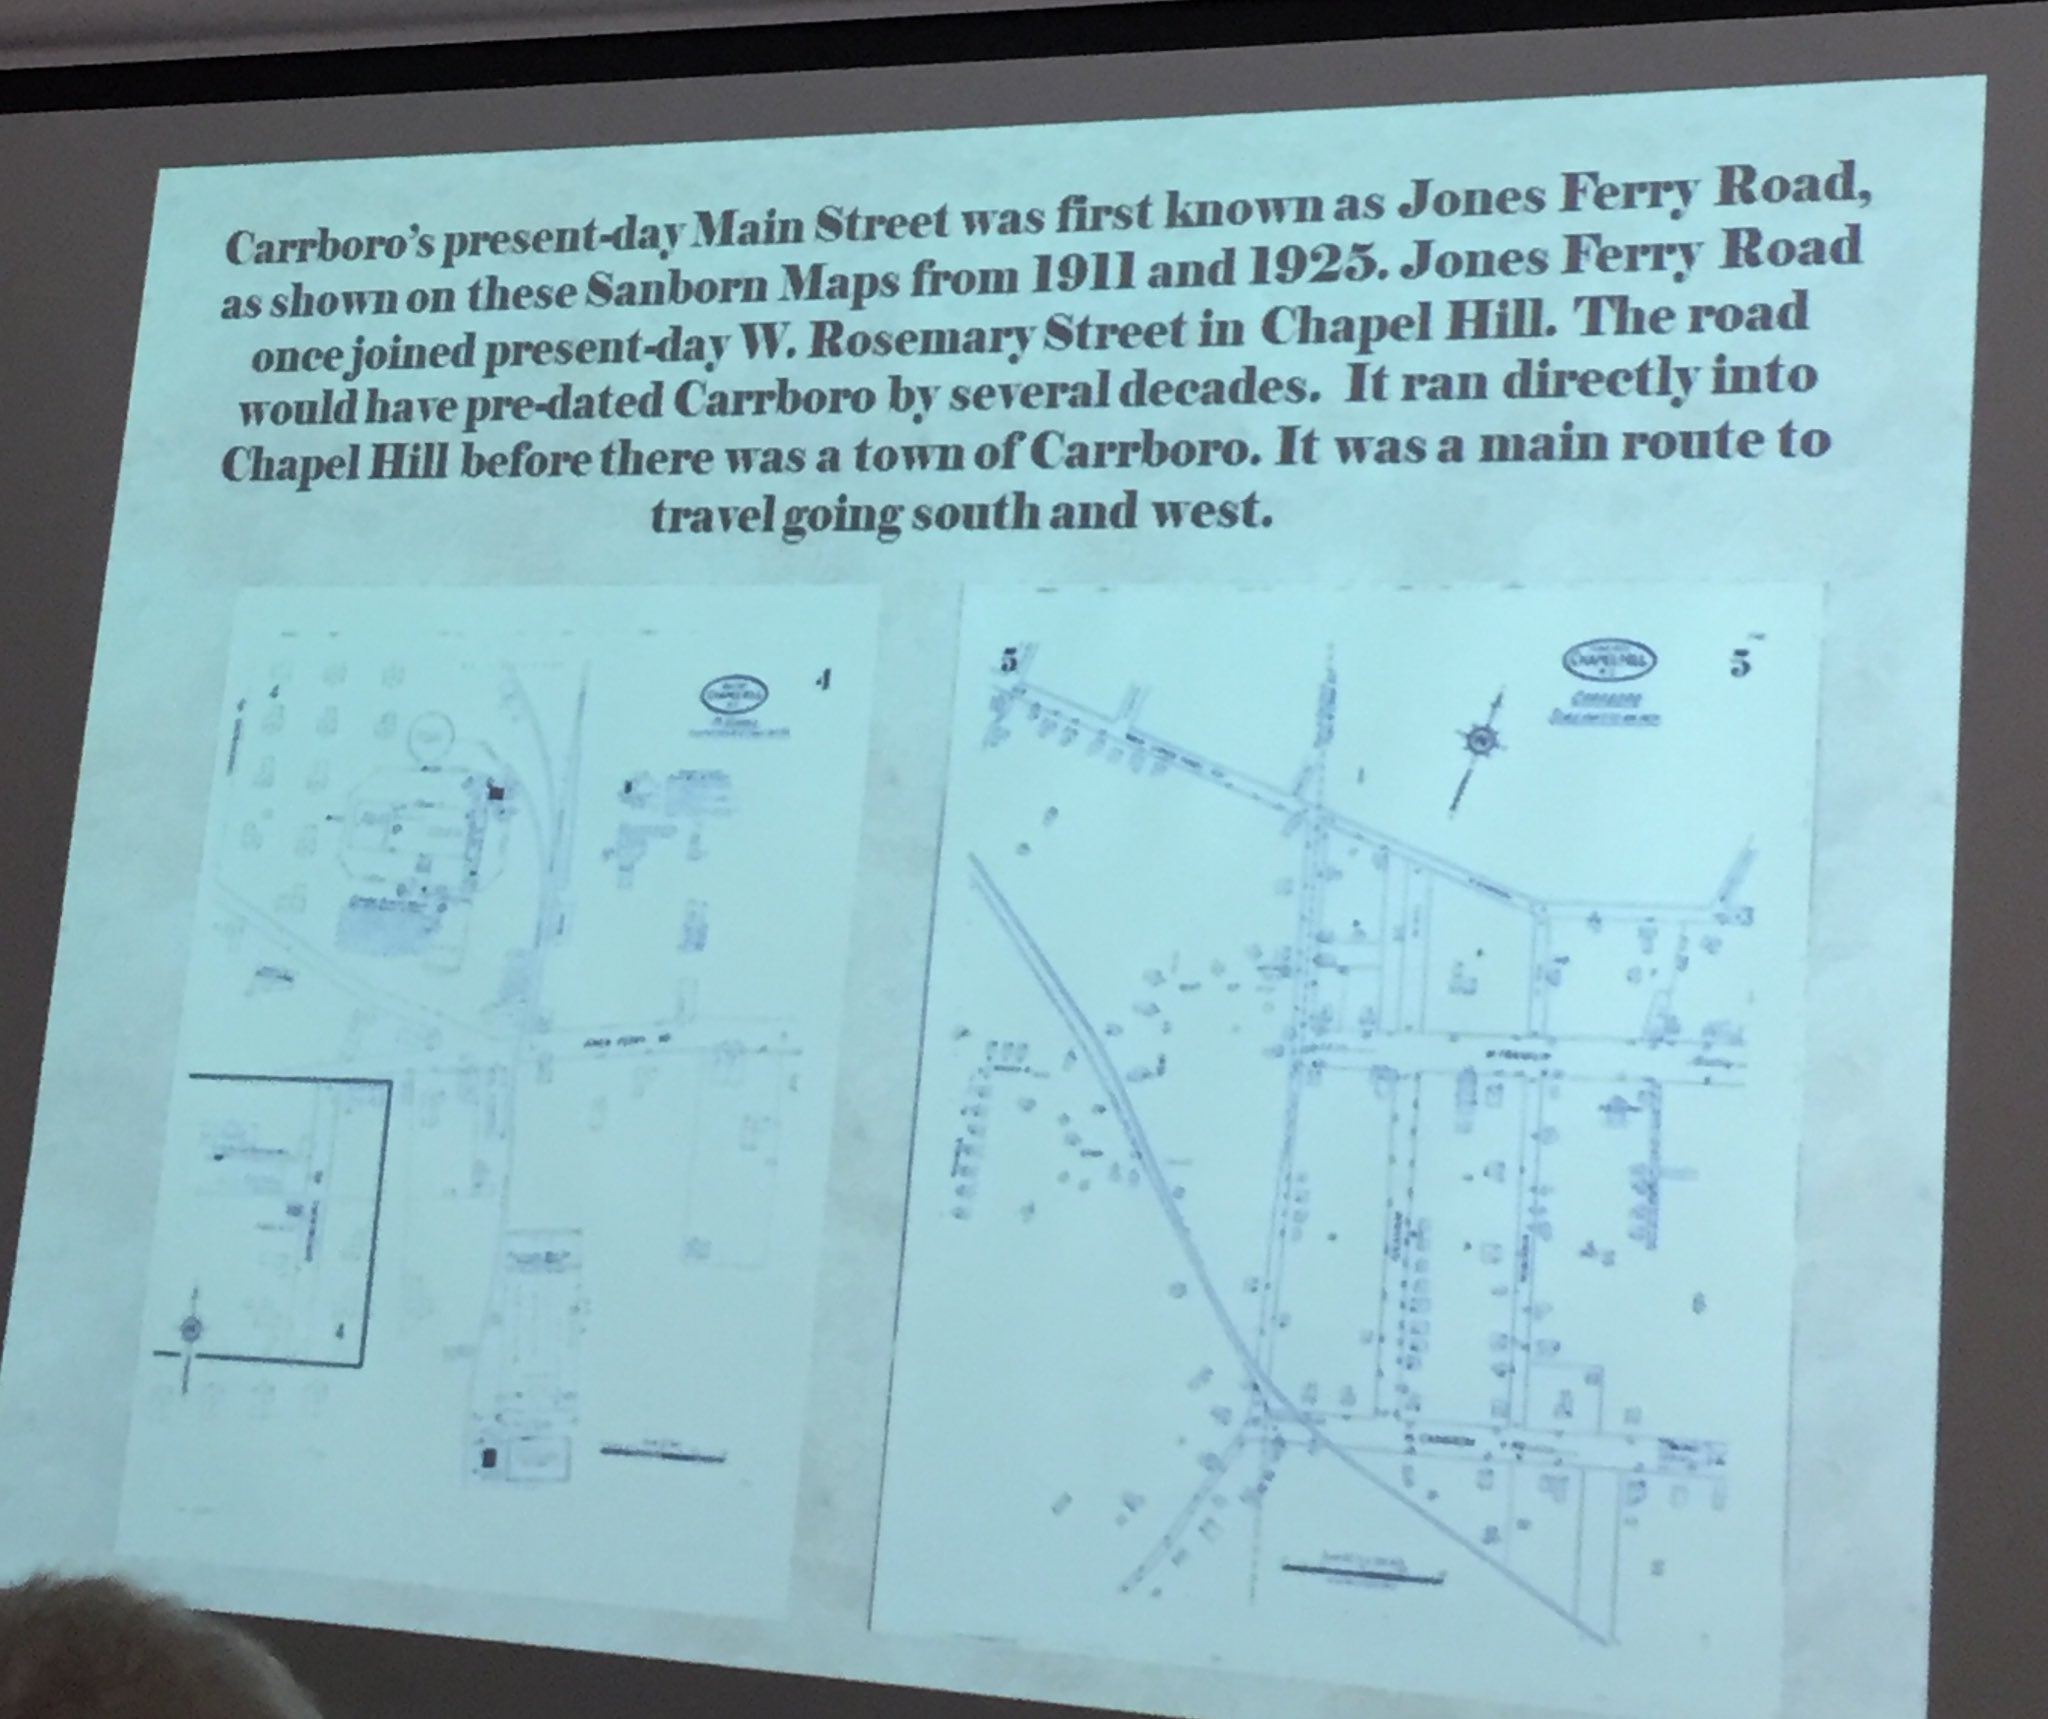 @chpublib Present day #Carrboro Main Street was first known as Jones Ferry Road #jonesferry https://t.co/94oLGoXC80